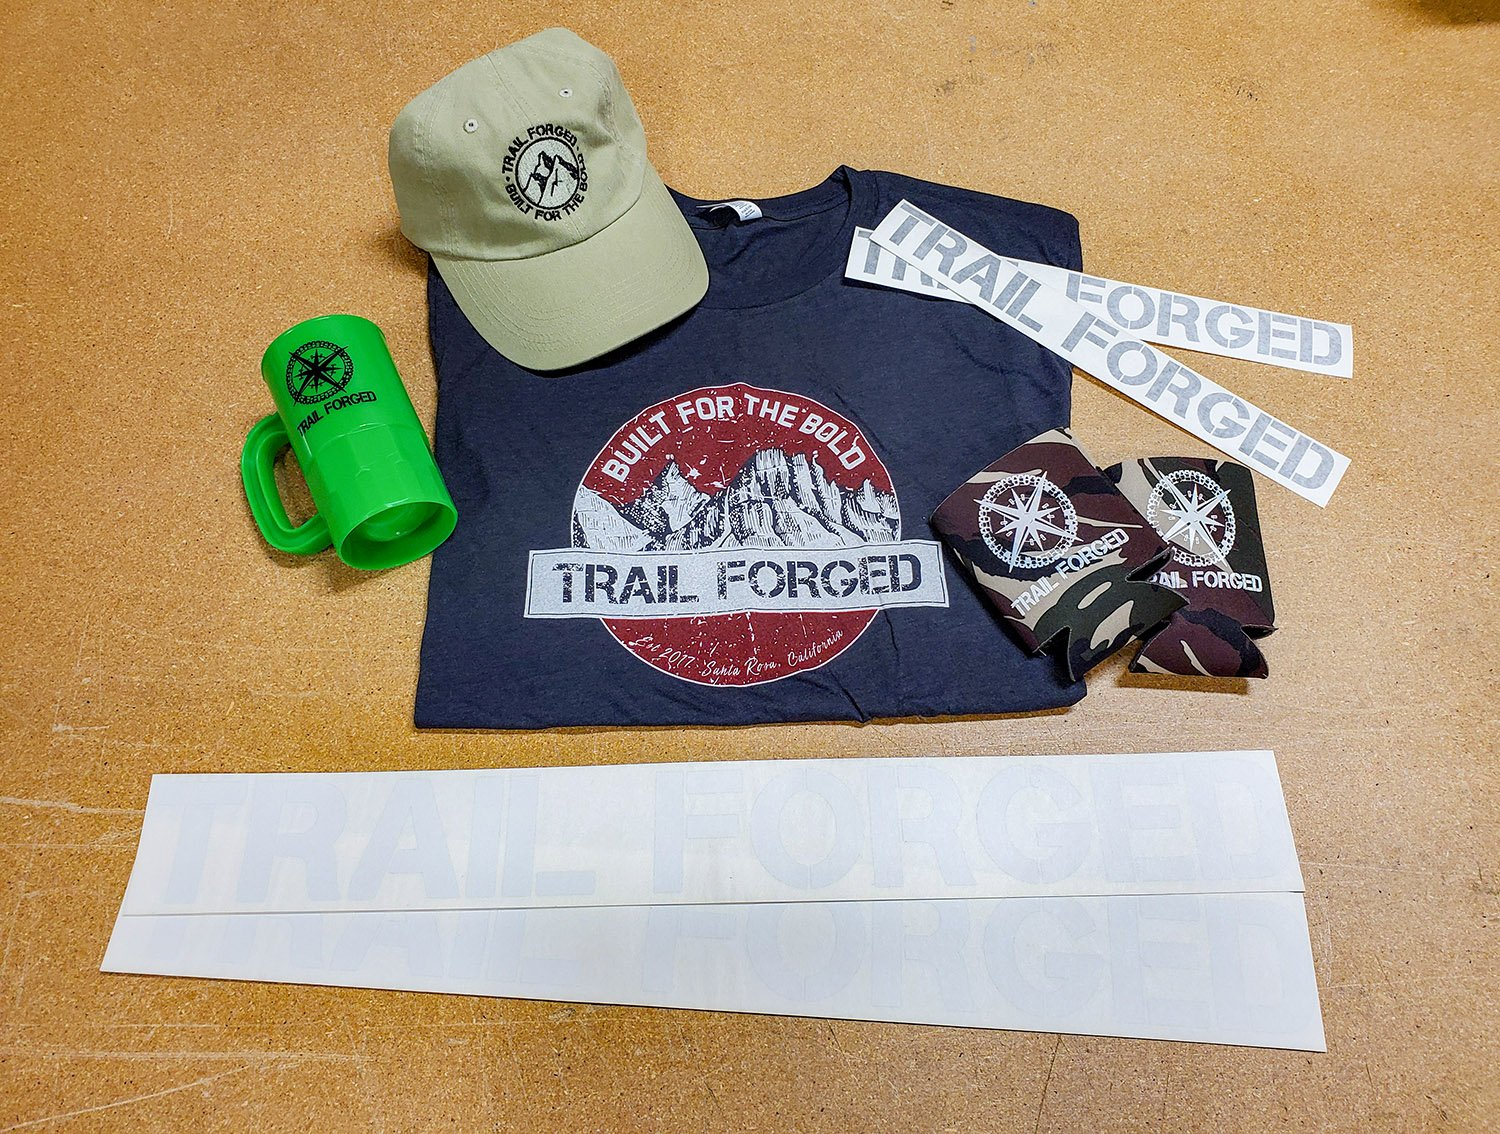 Trail Forged Ultimate Swag Pack!